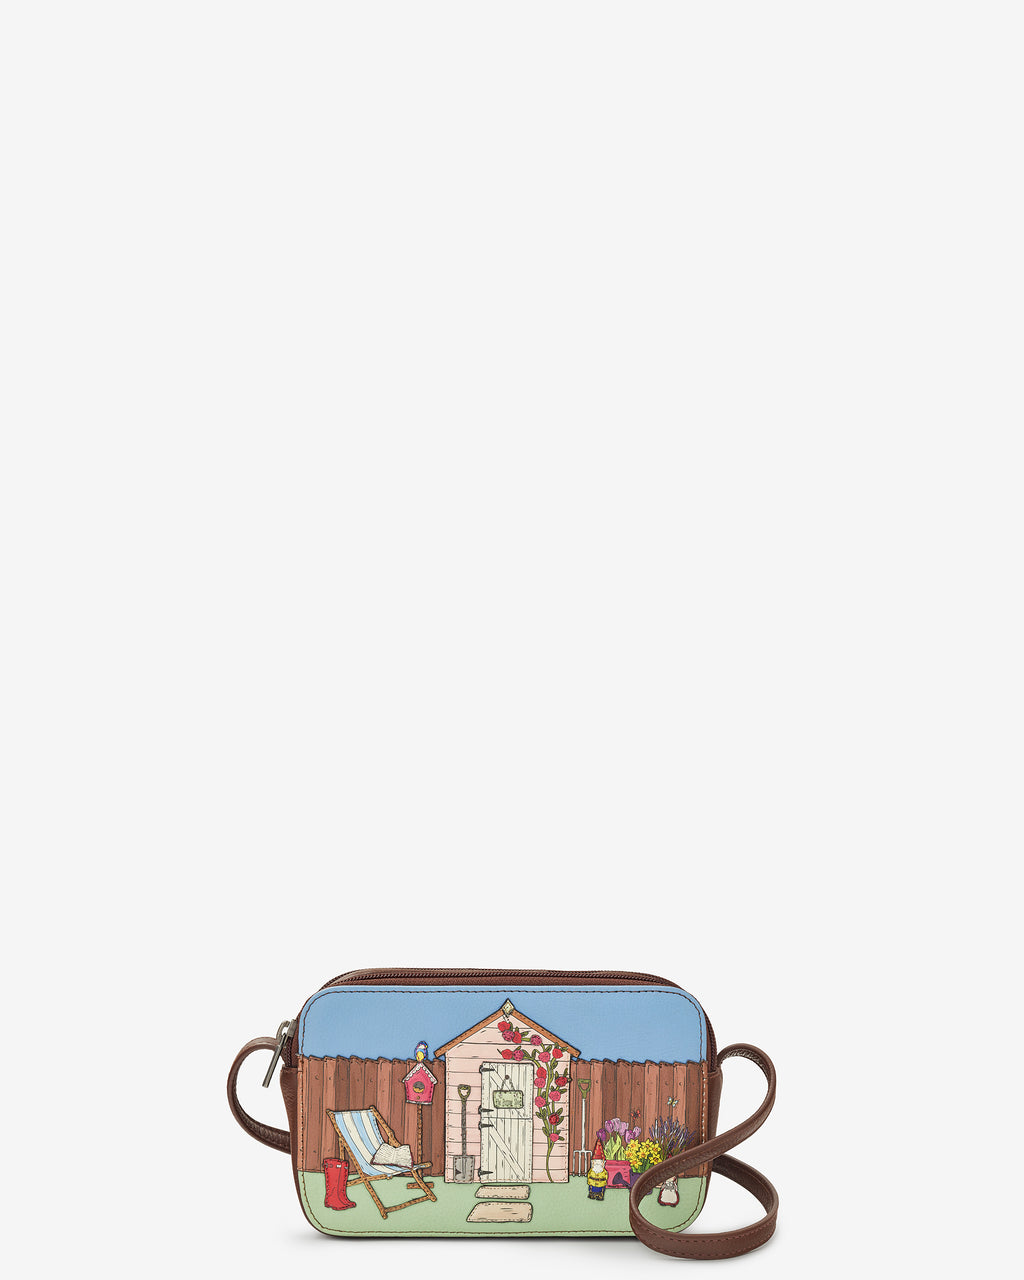 The Potting Shed Porter Leather Cross Body Bag